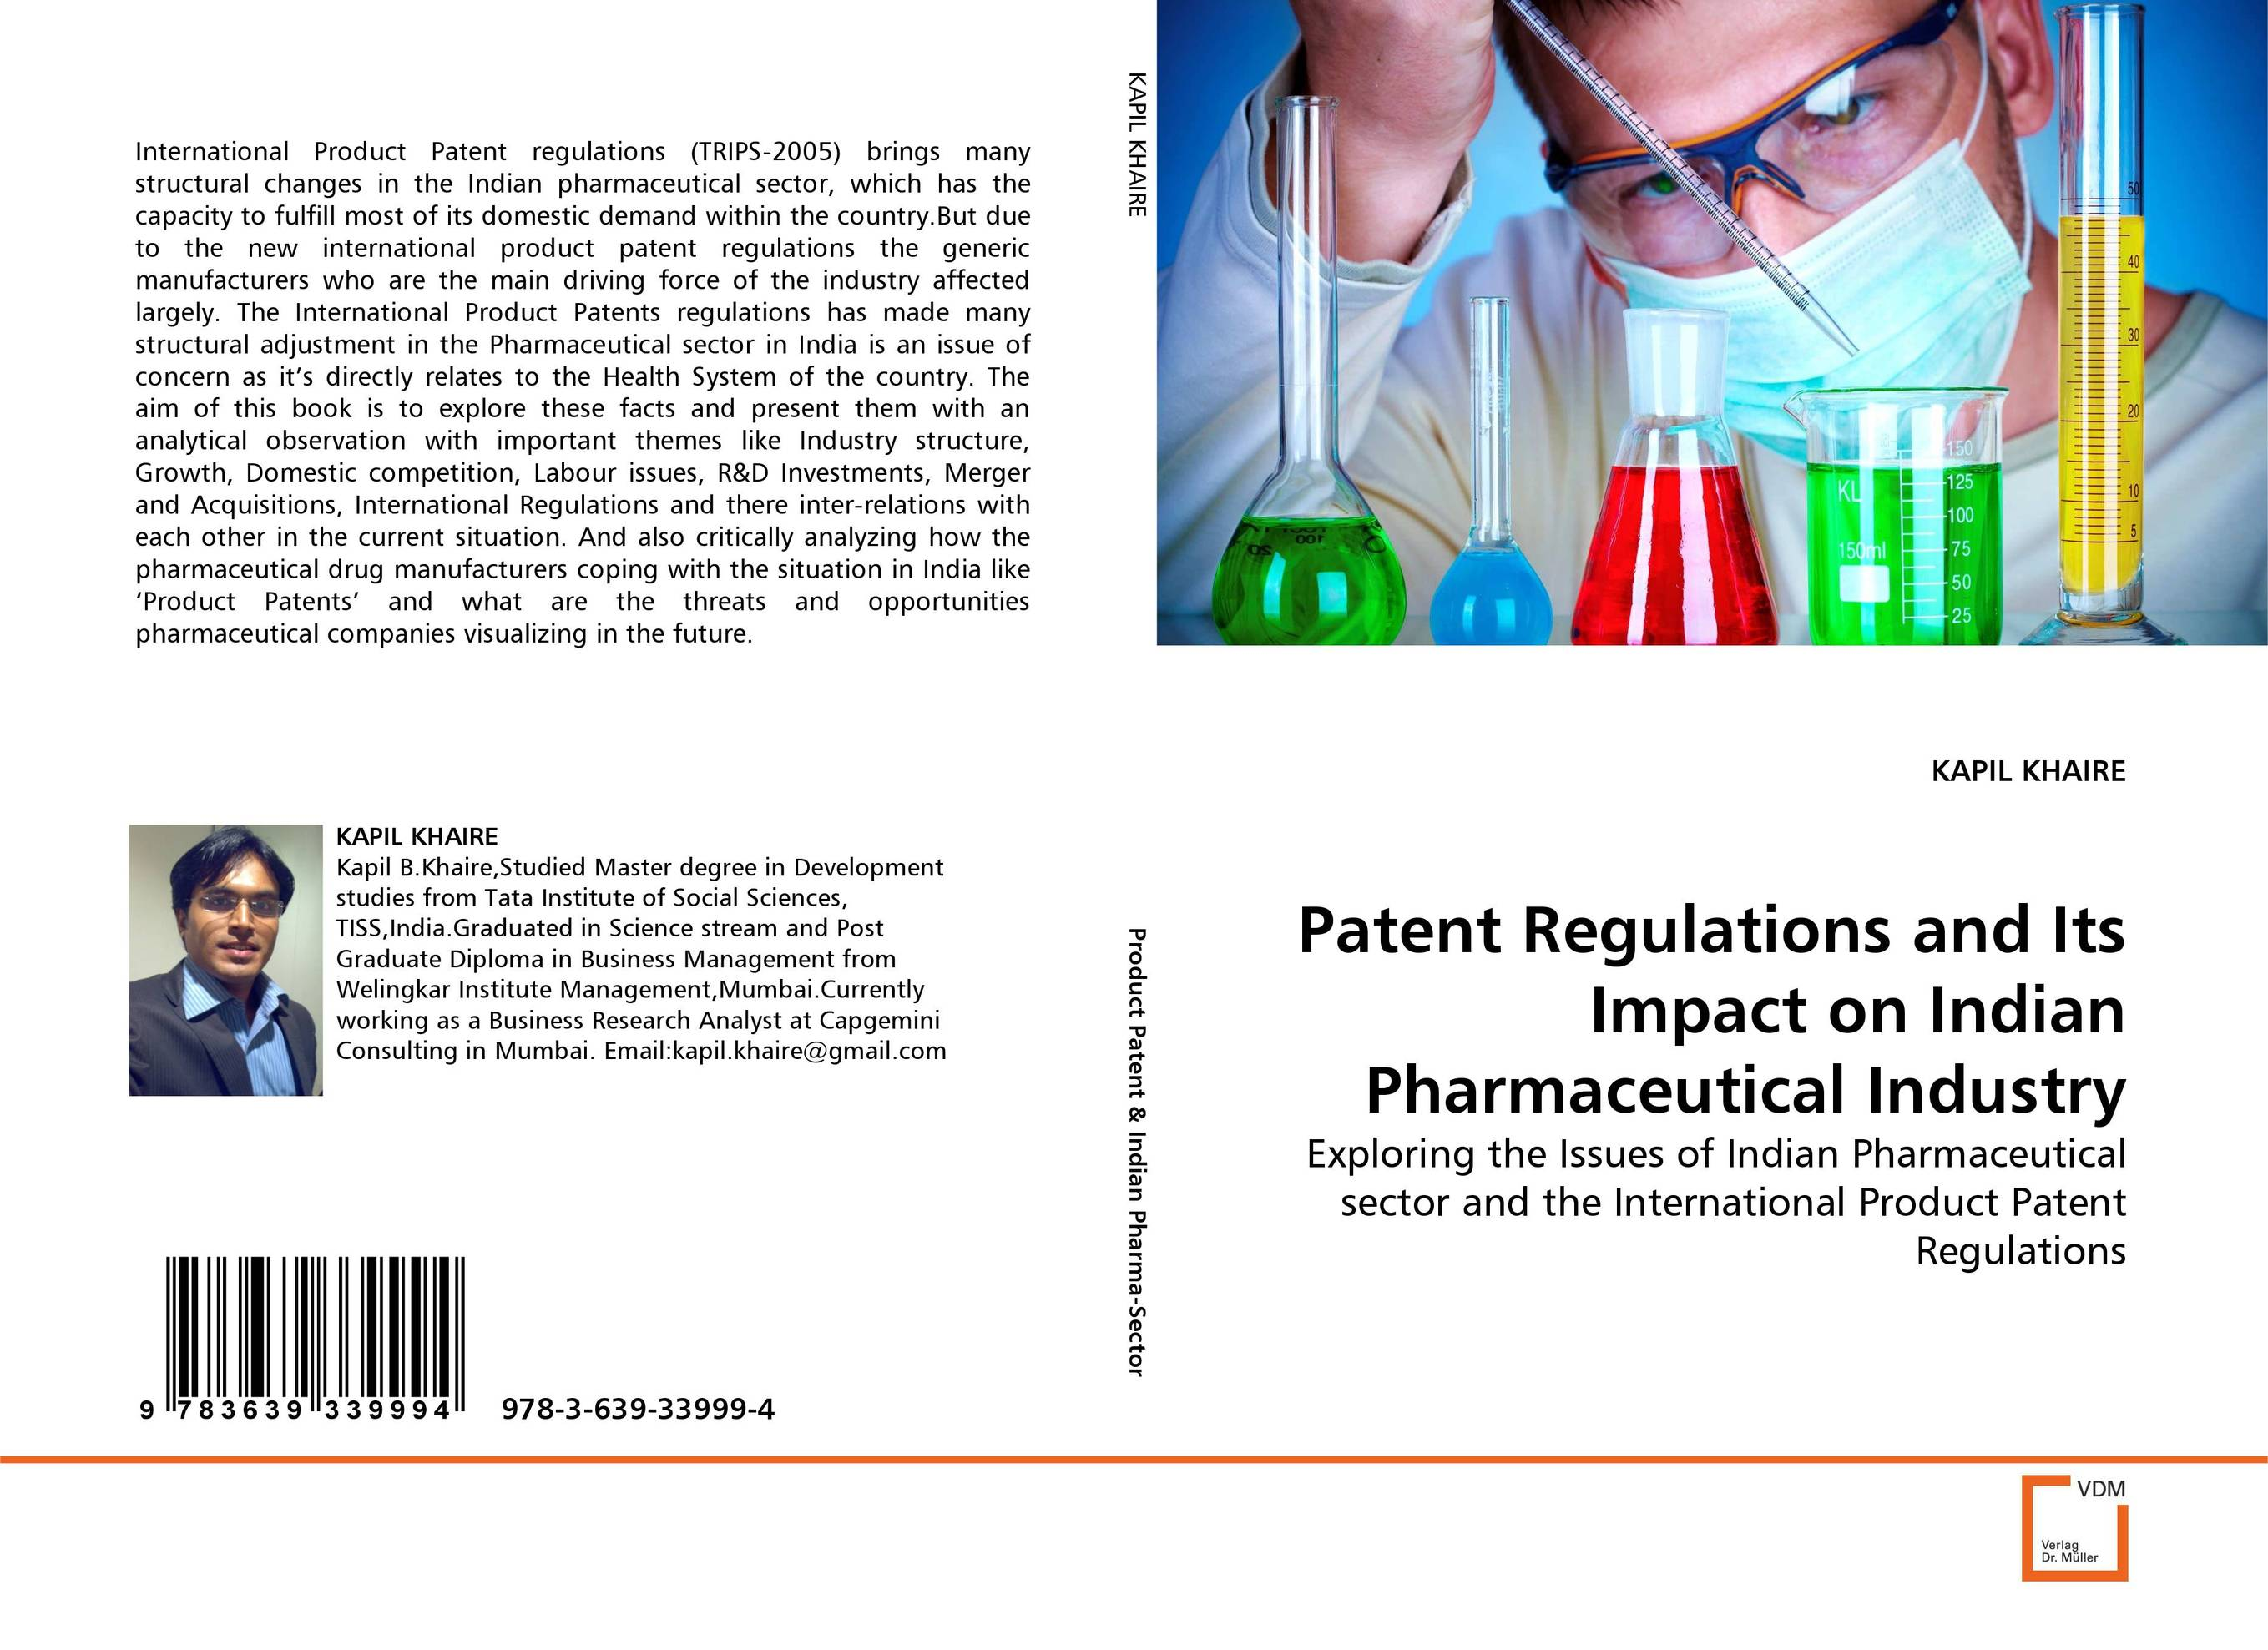 Patent Regulations and Its Impact on Indian Pharmaceutical Industry купить